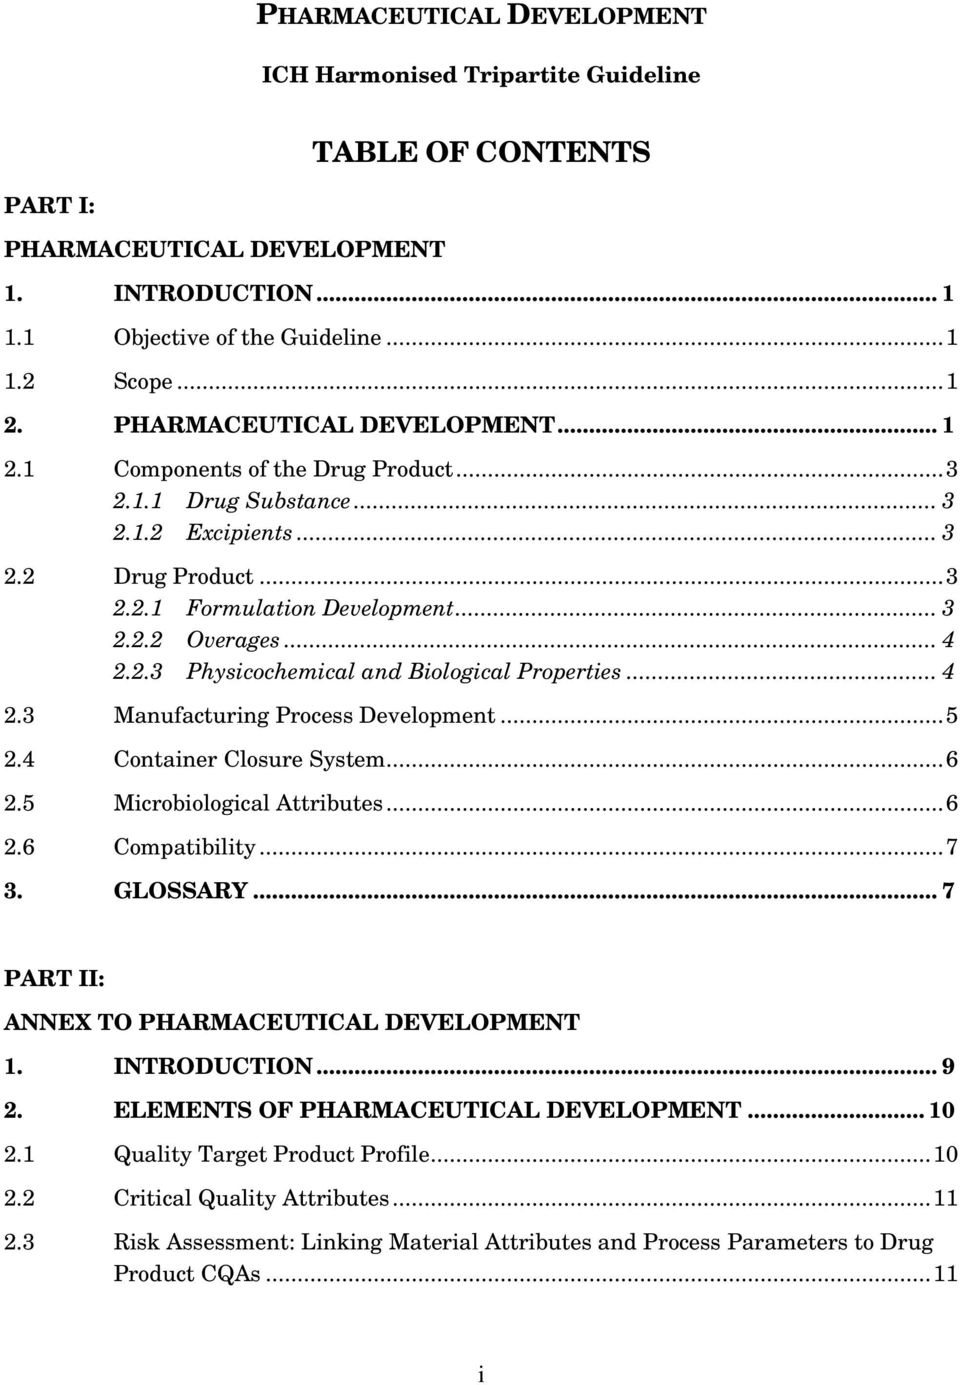 .. 4 2.3 Manufacturing Process Development...5 2.4 Container Closure System...6 2.5 Microbiological Attributes...6 2.6 Compatibility...7 3. GLOSSARY... 7 PART II: ANNEX TO PHARMACEUTICAL DEVELOPMENT 1.